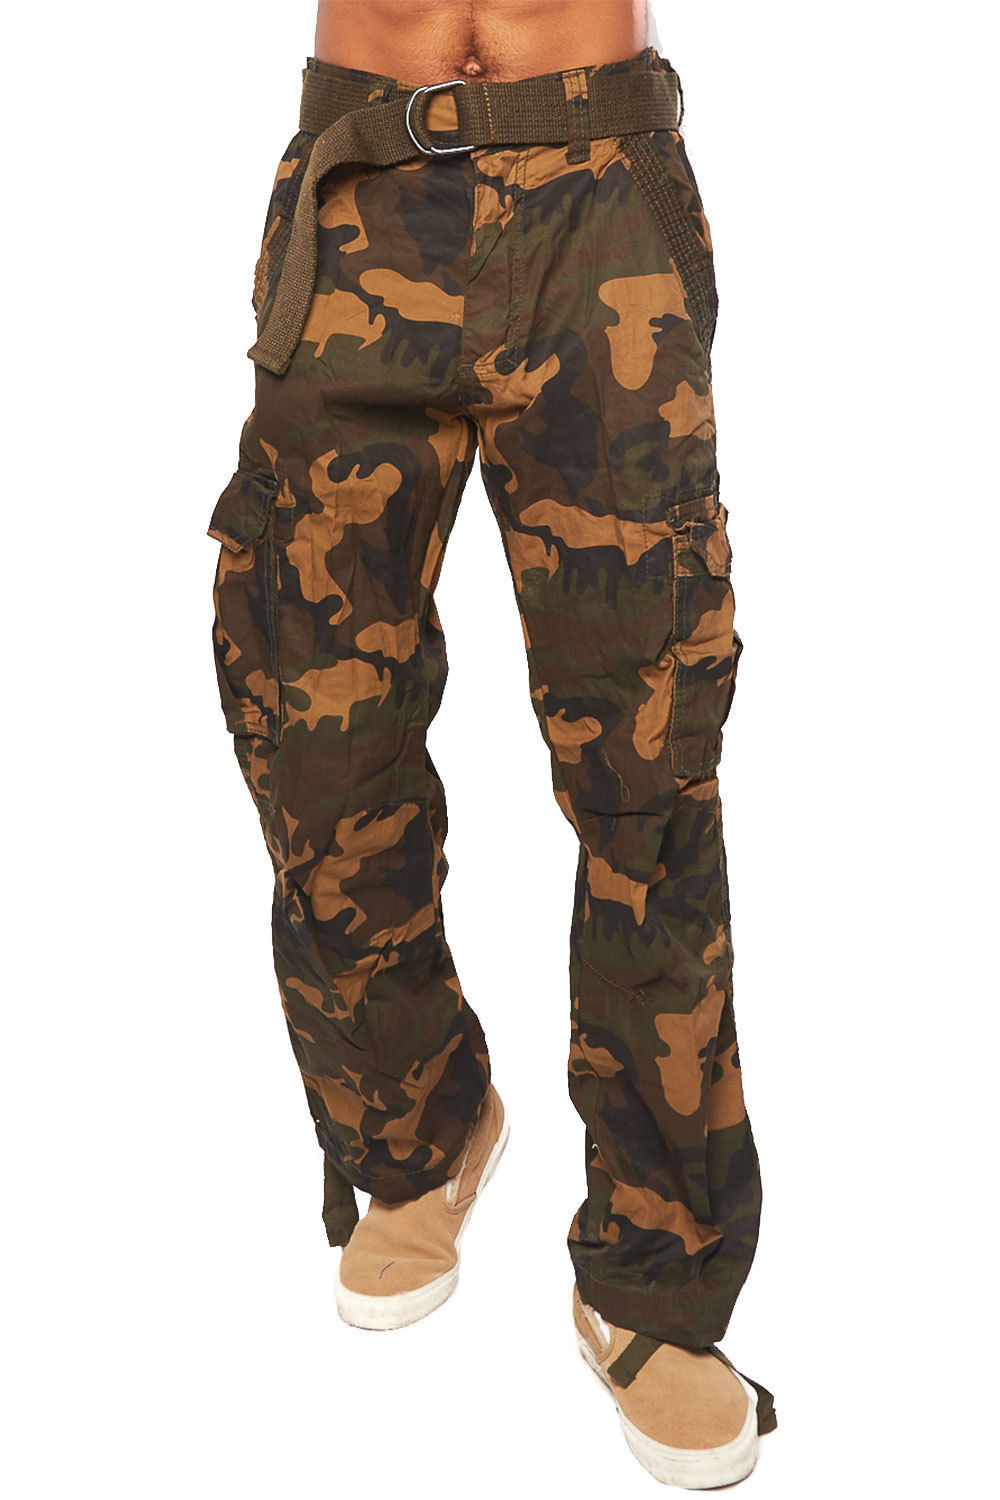 Mens Hipster Hip Hop Loose Straight Cargo Pants MTP20-30/30-Camo